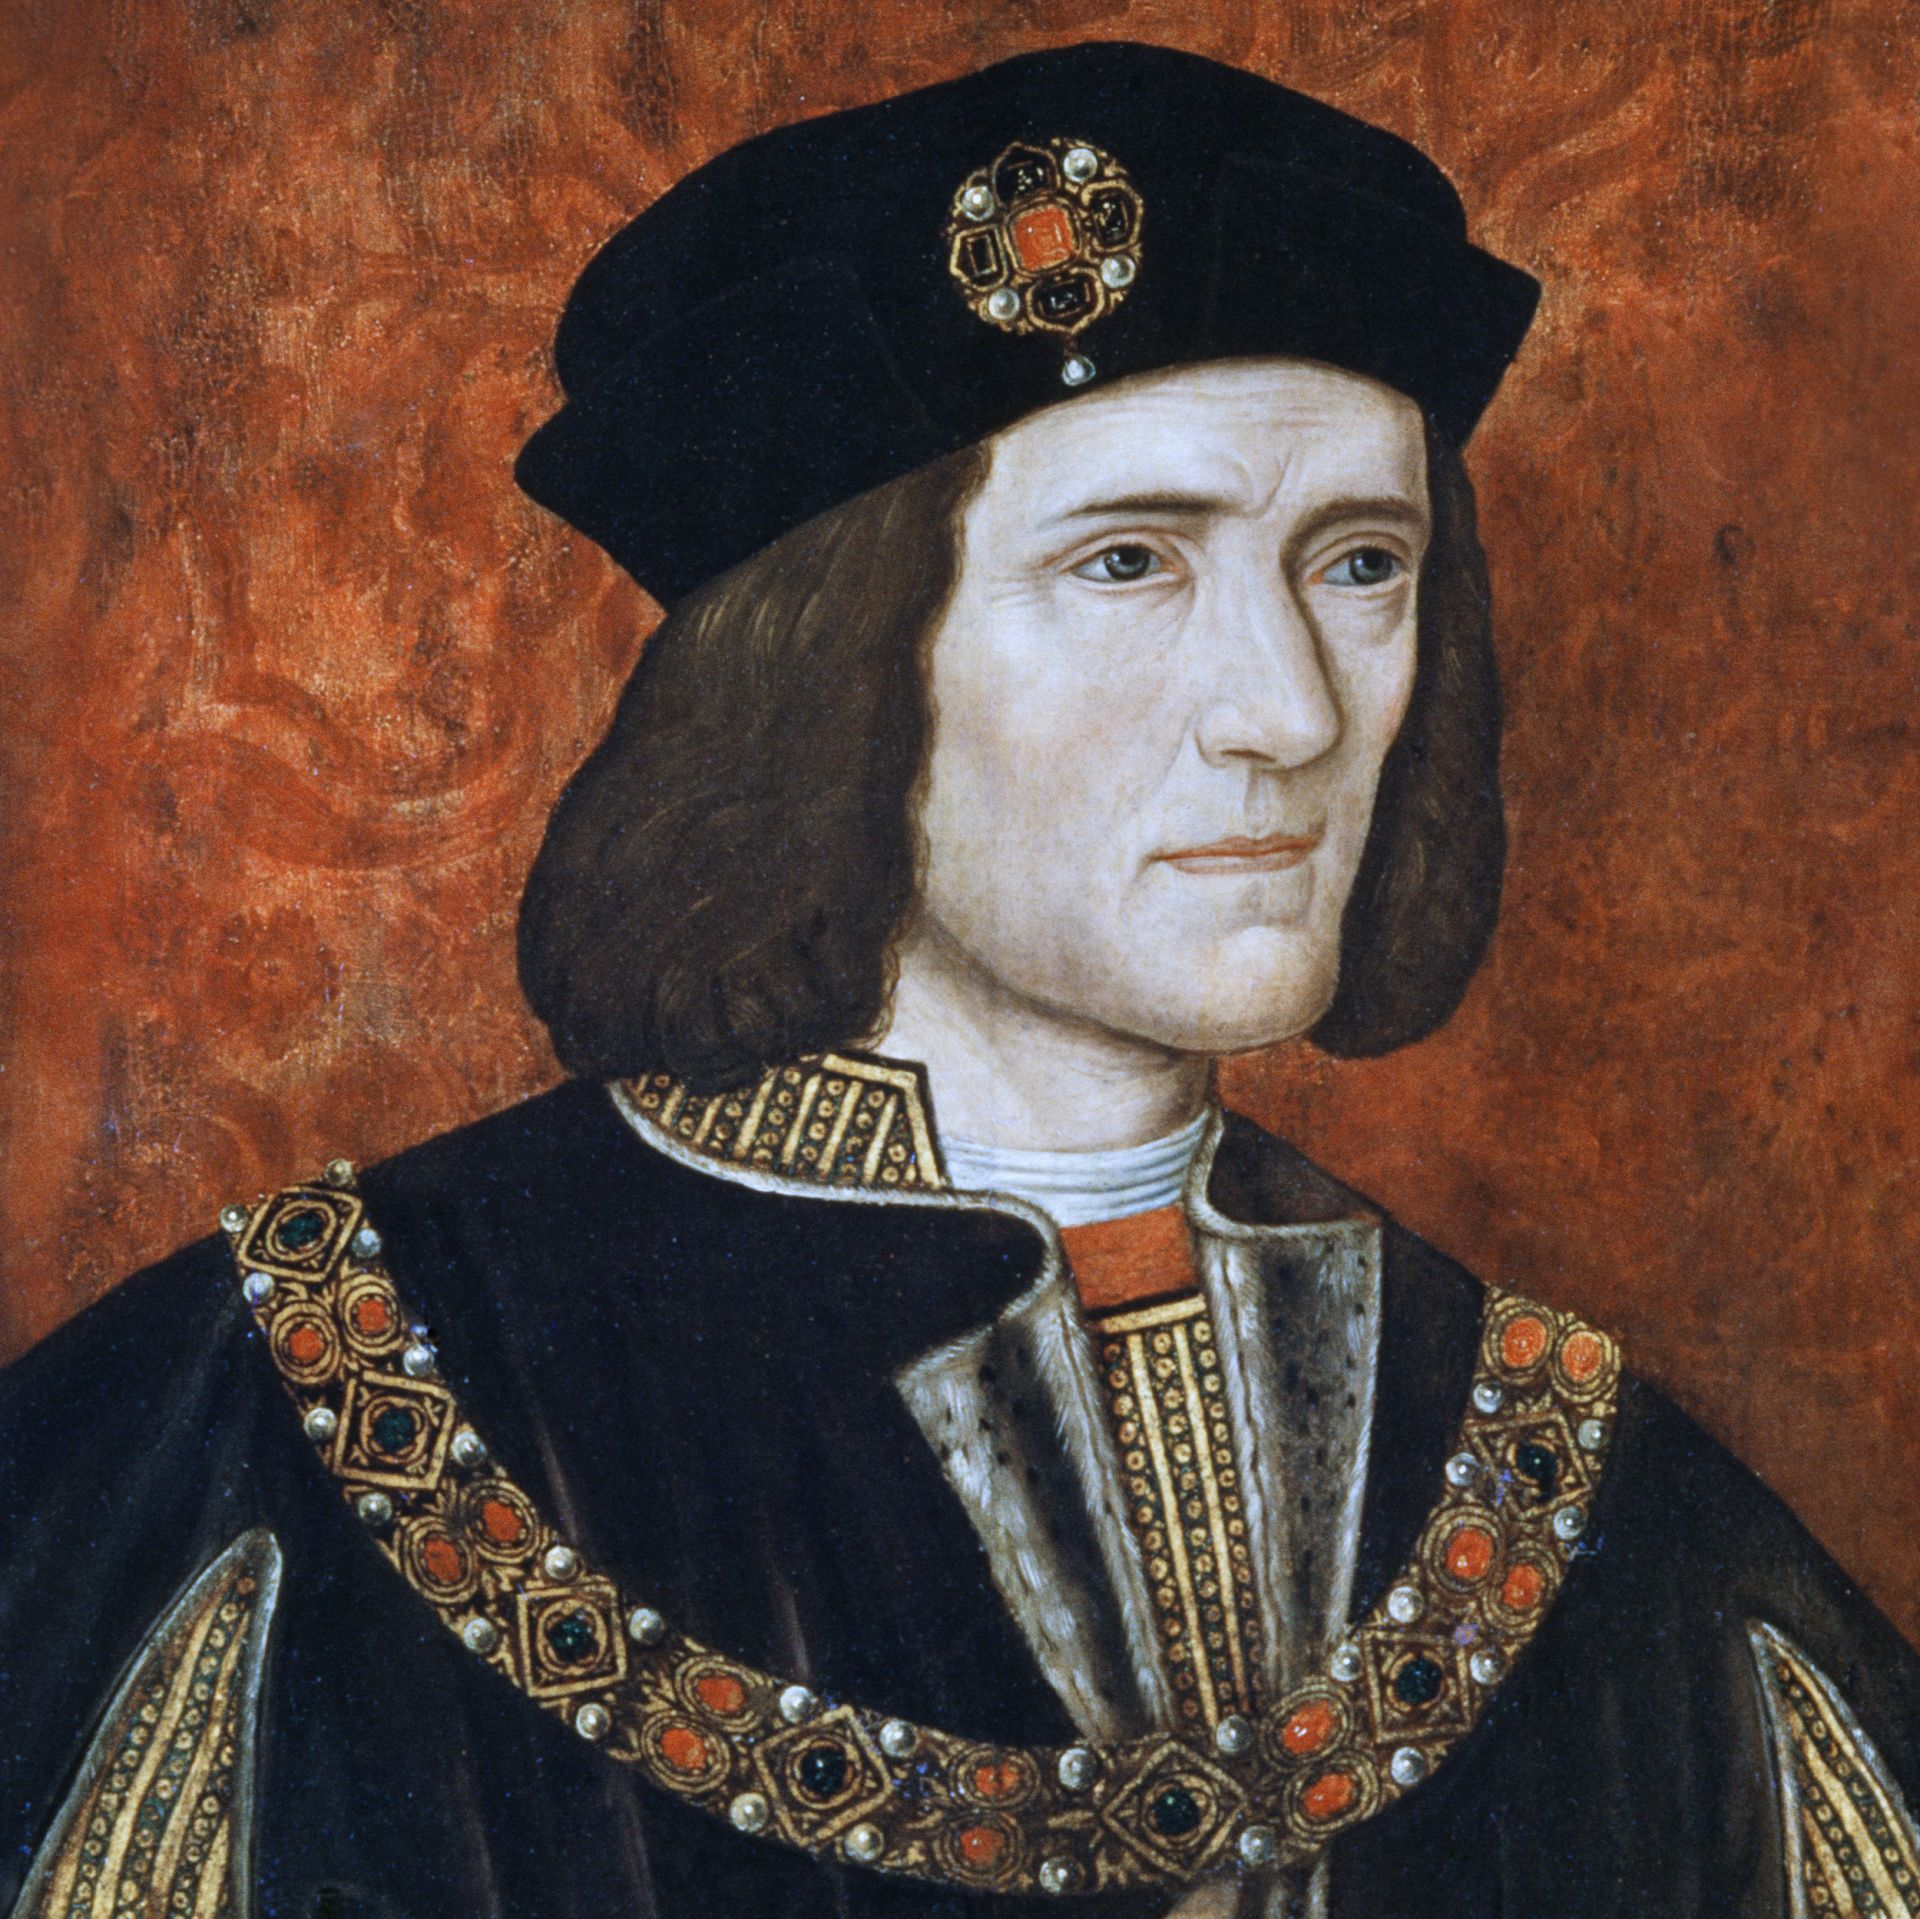 historical facts of richard the third Richard iii was the last of the four works of shakespeare on english history that  deal with  play is in fact dominated by the hunchback figure of richard duke of .